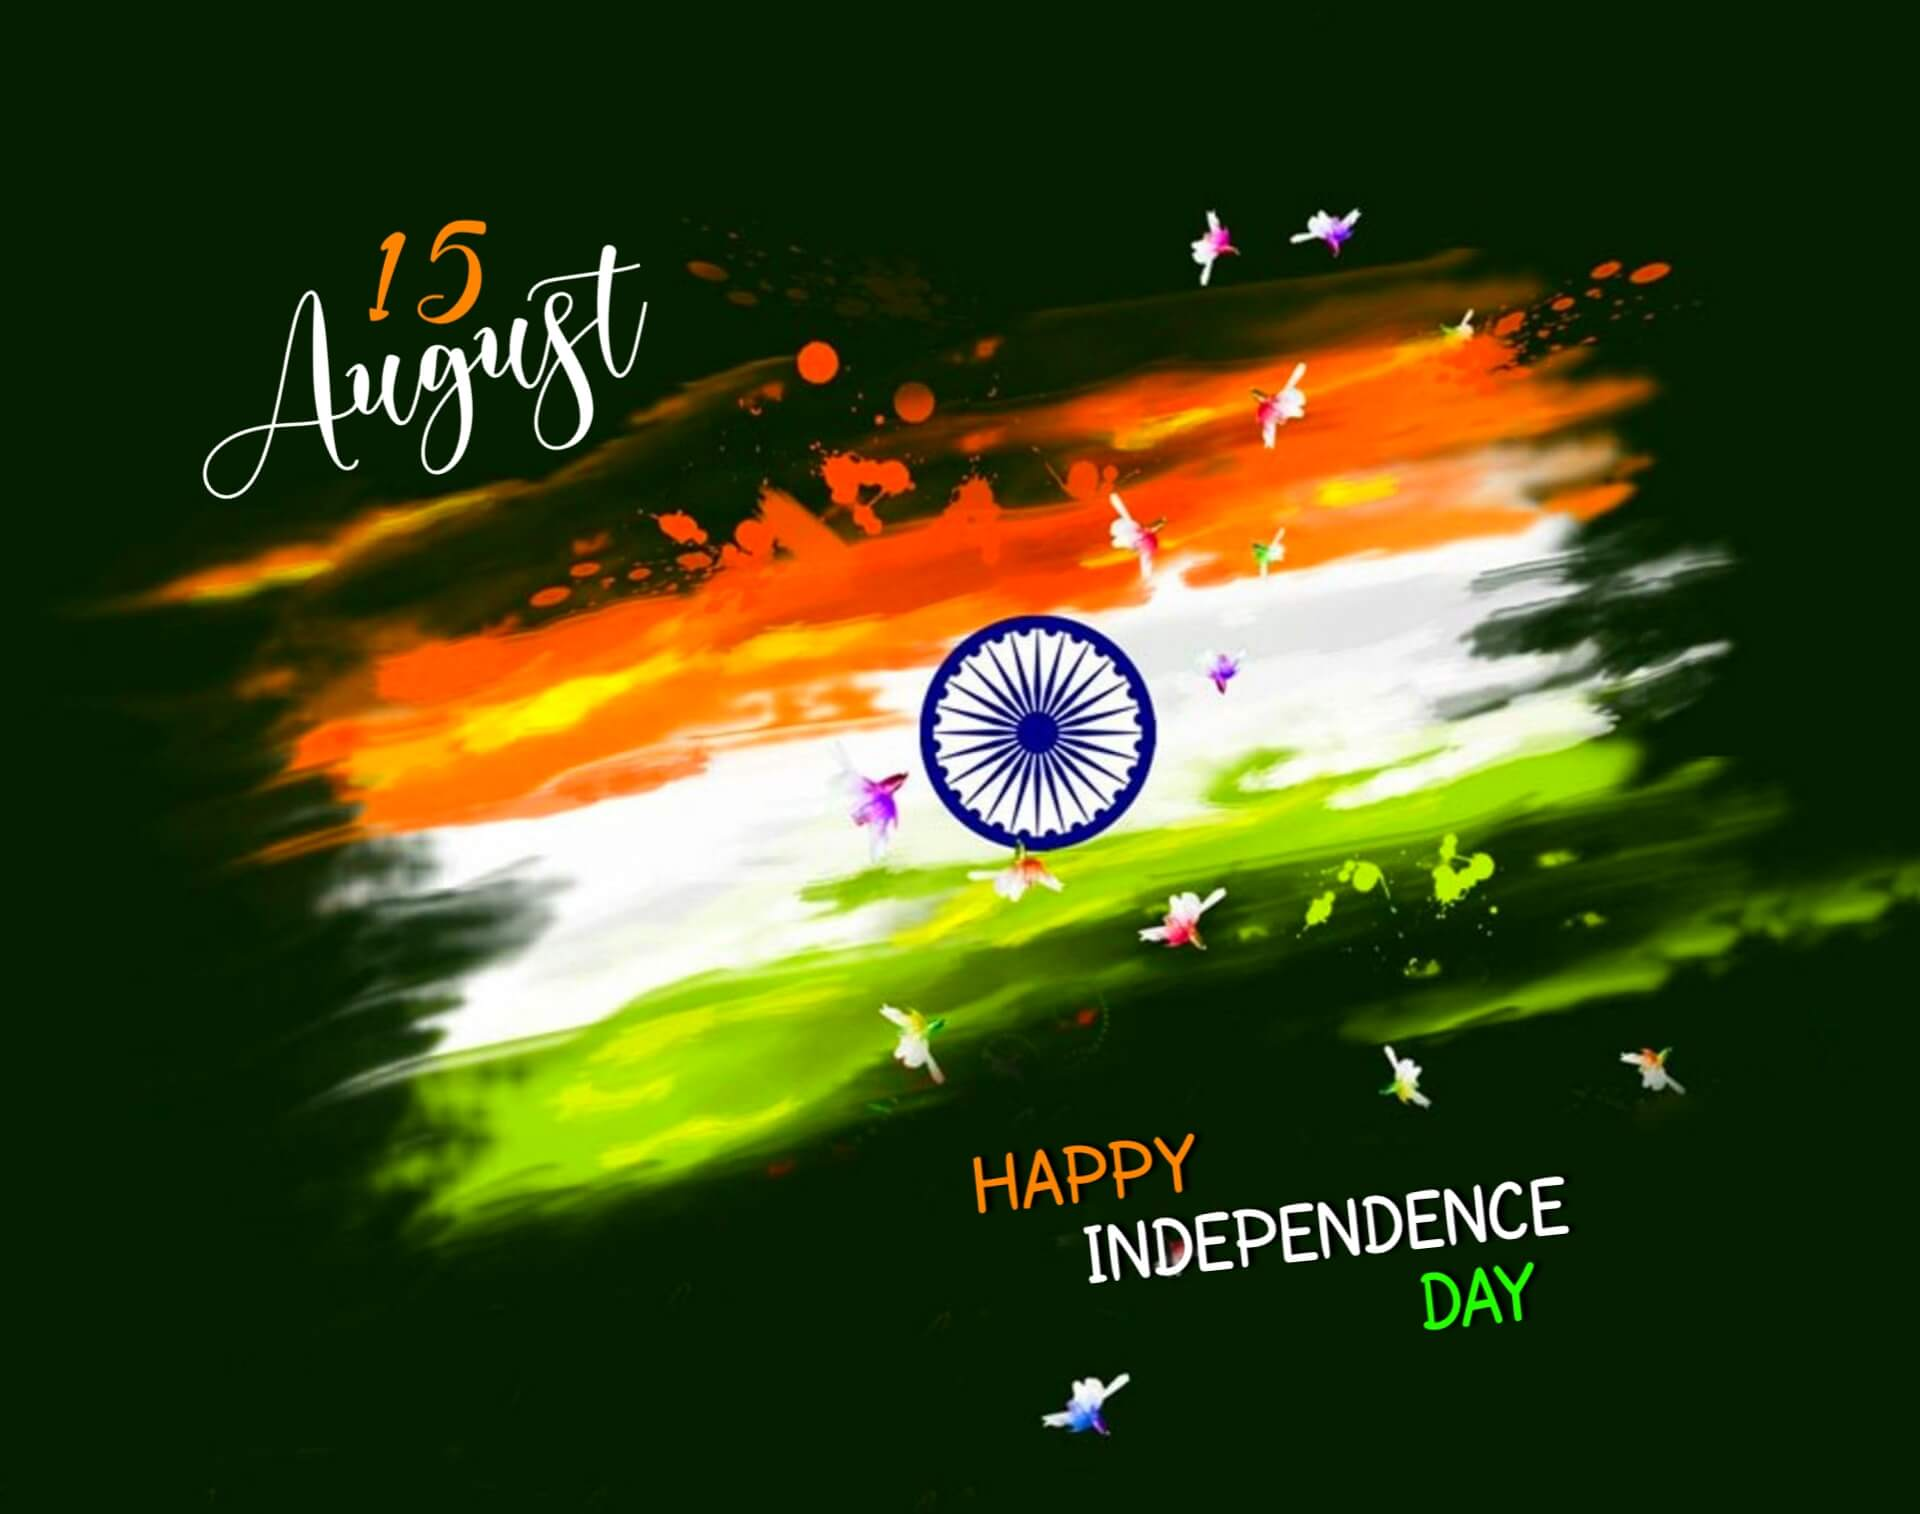 HD Independence Day